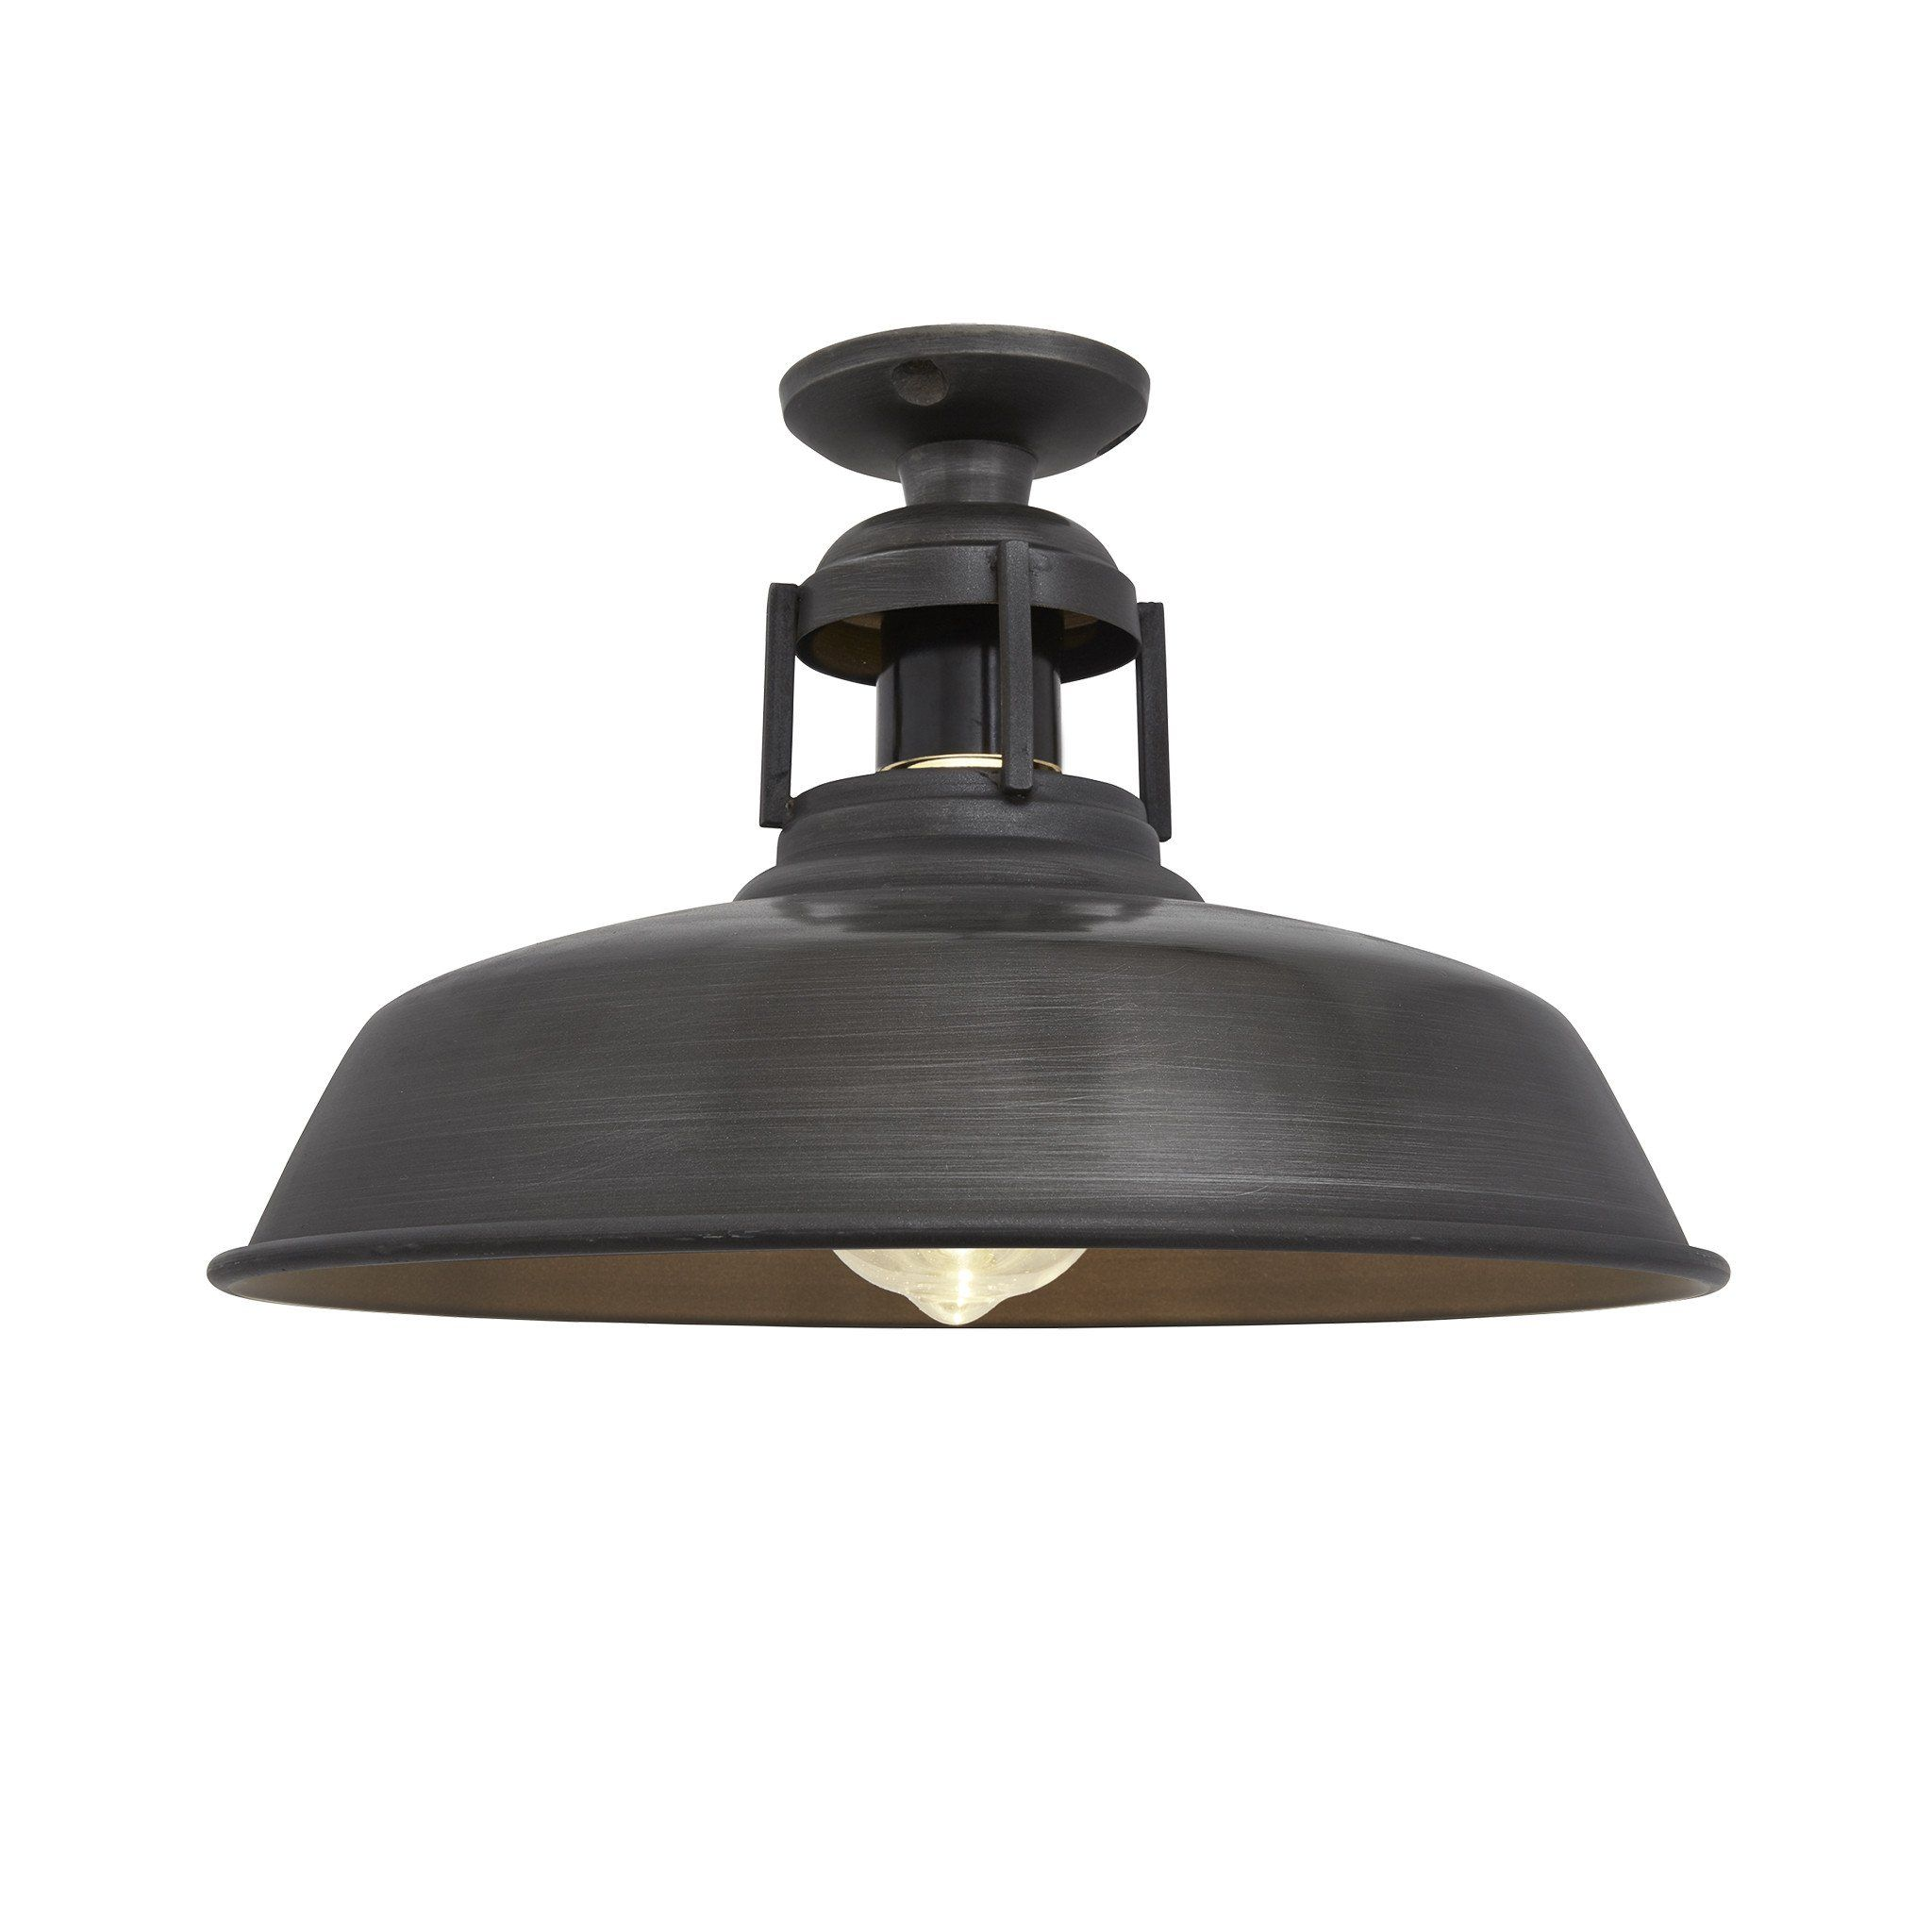 barn slotted flush mount - 12 inch - pewter | kitchen